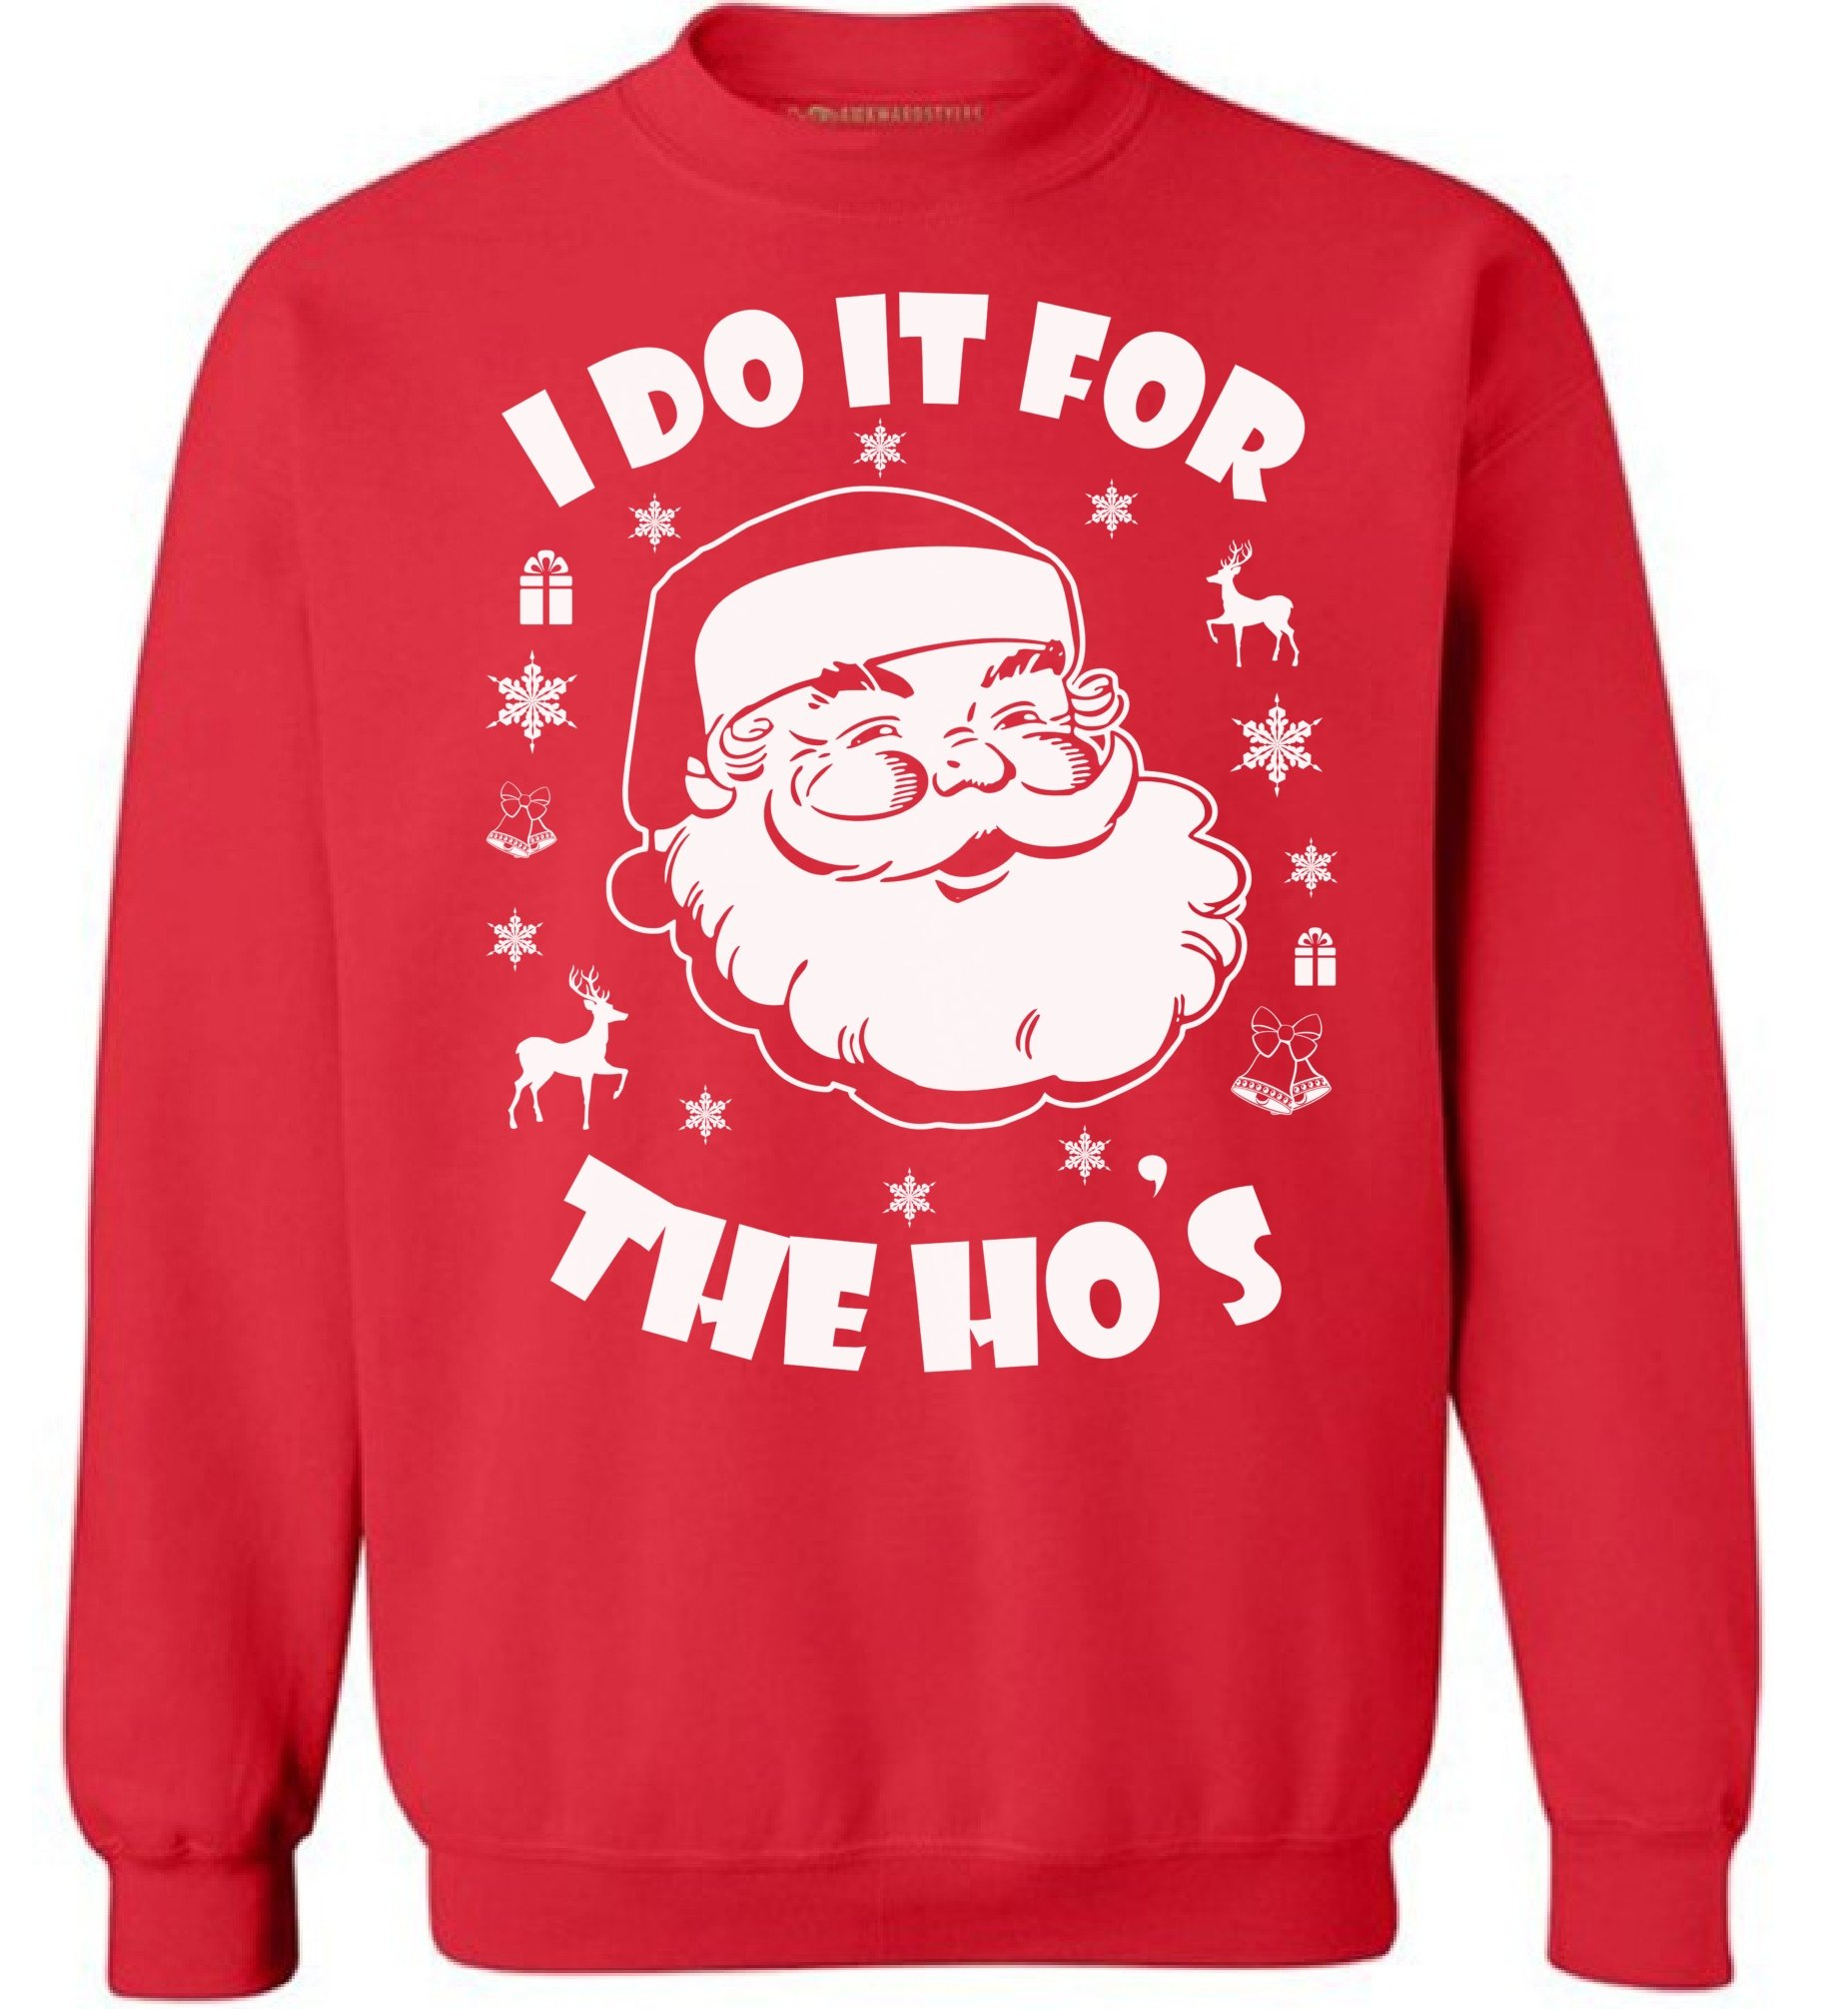 Awkward Styles I Do It for The Hos Sweatshirt Ugly Christmas Sweatshirt Funny Santa Sweater Red 4XL by Awkward Styles (Image #1)